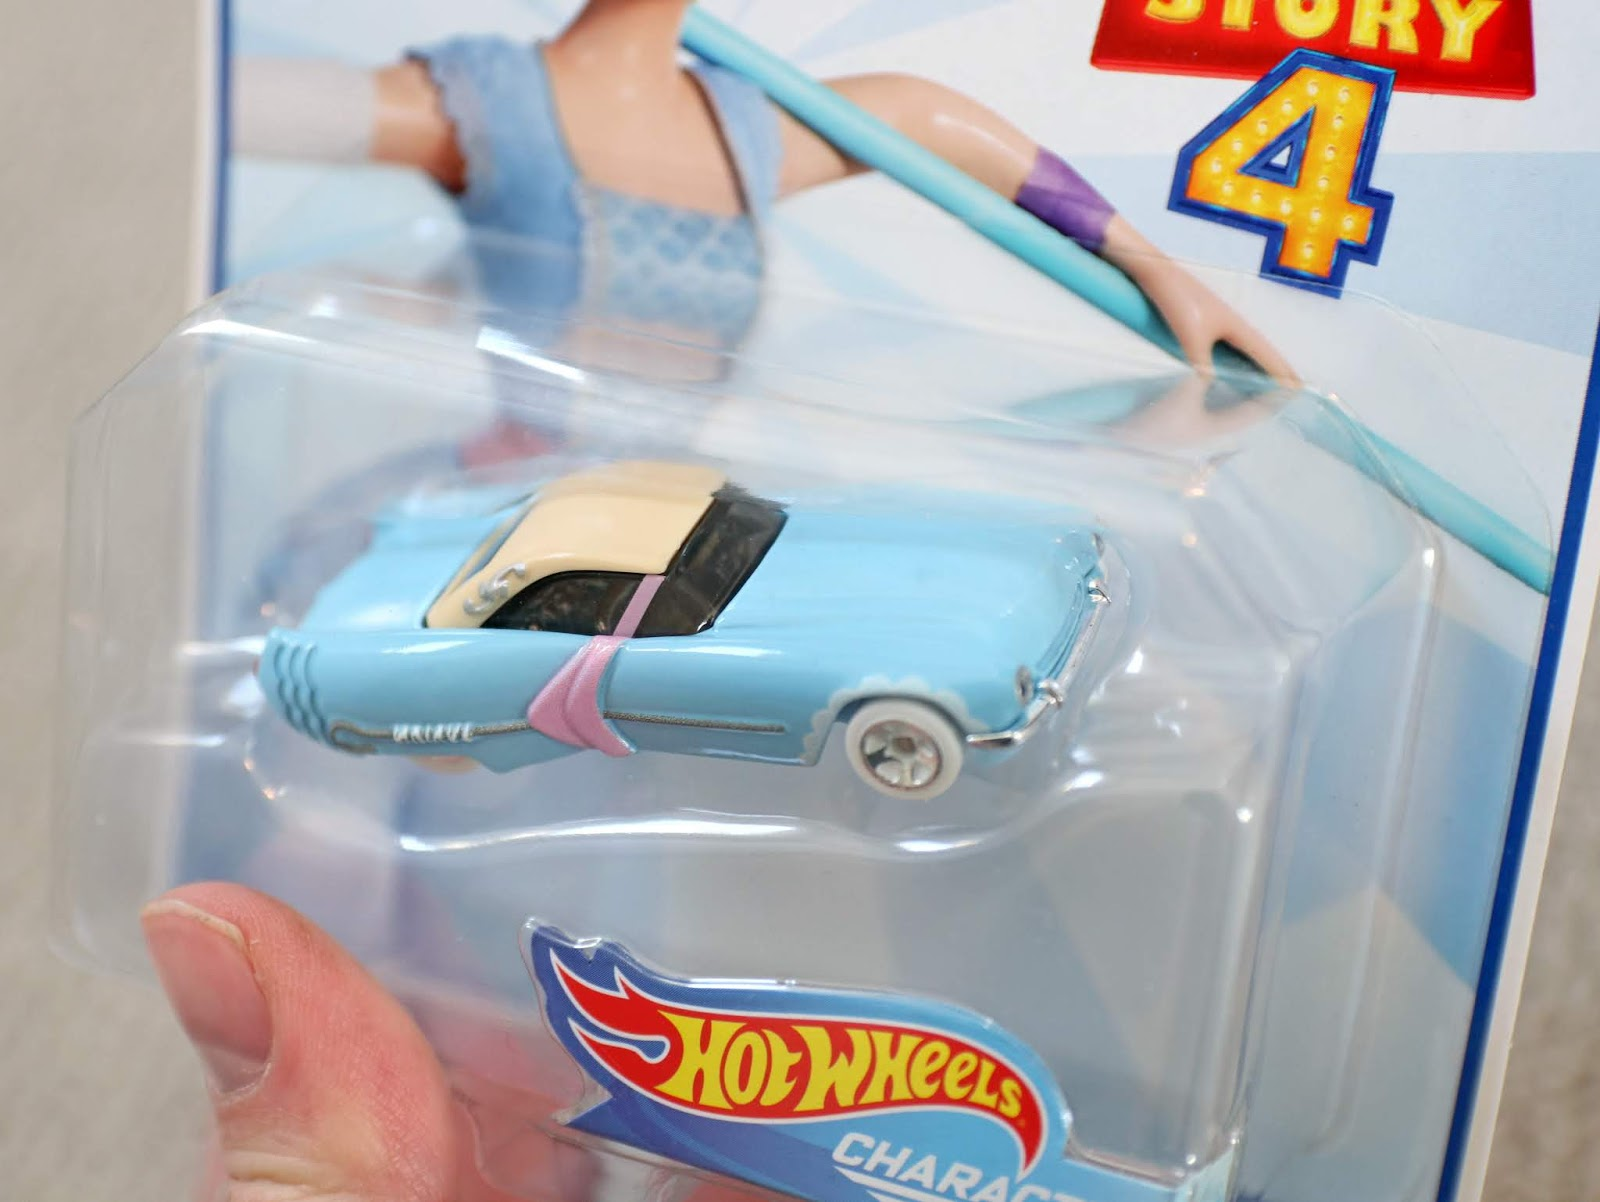 toy story 4 hotwheels character cars bo peep